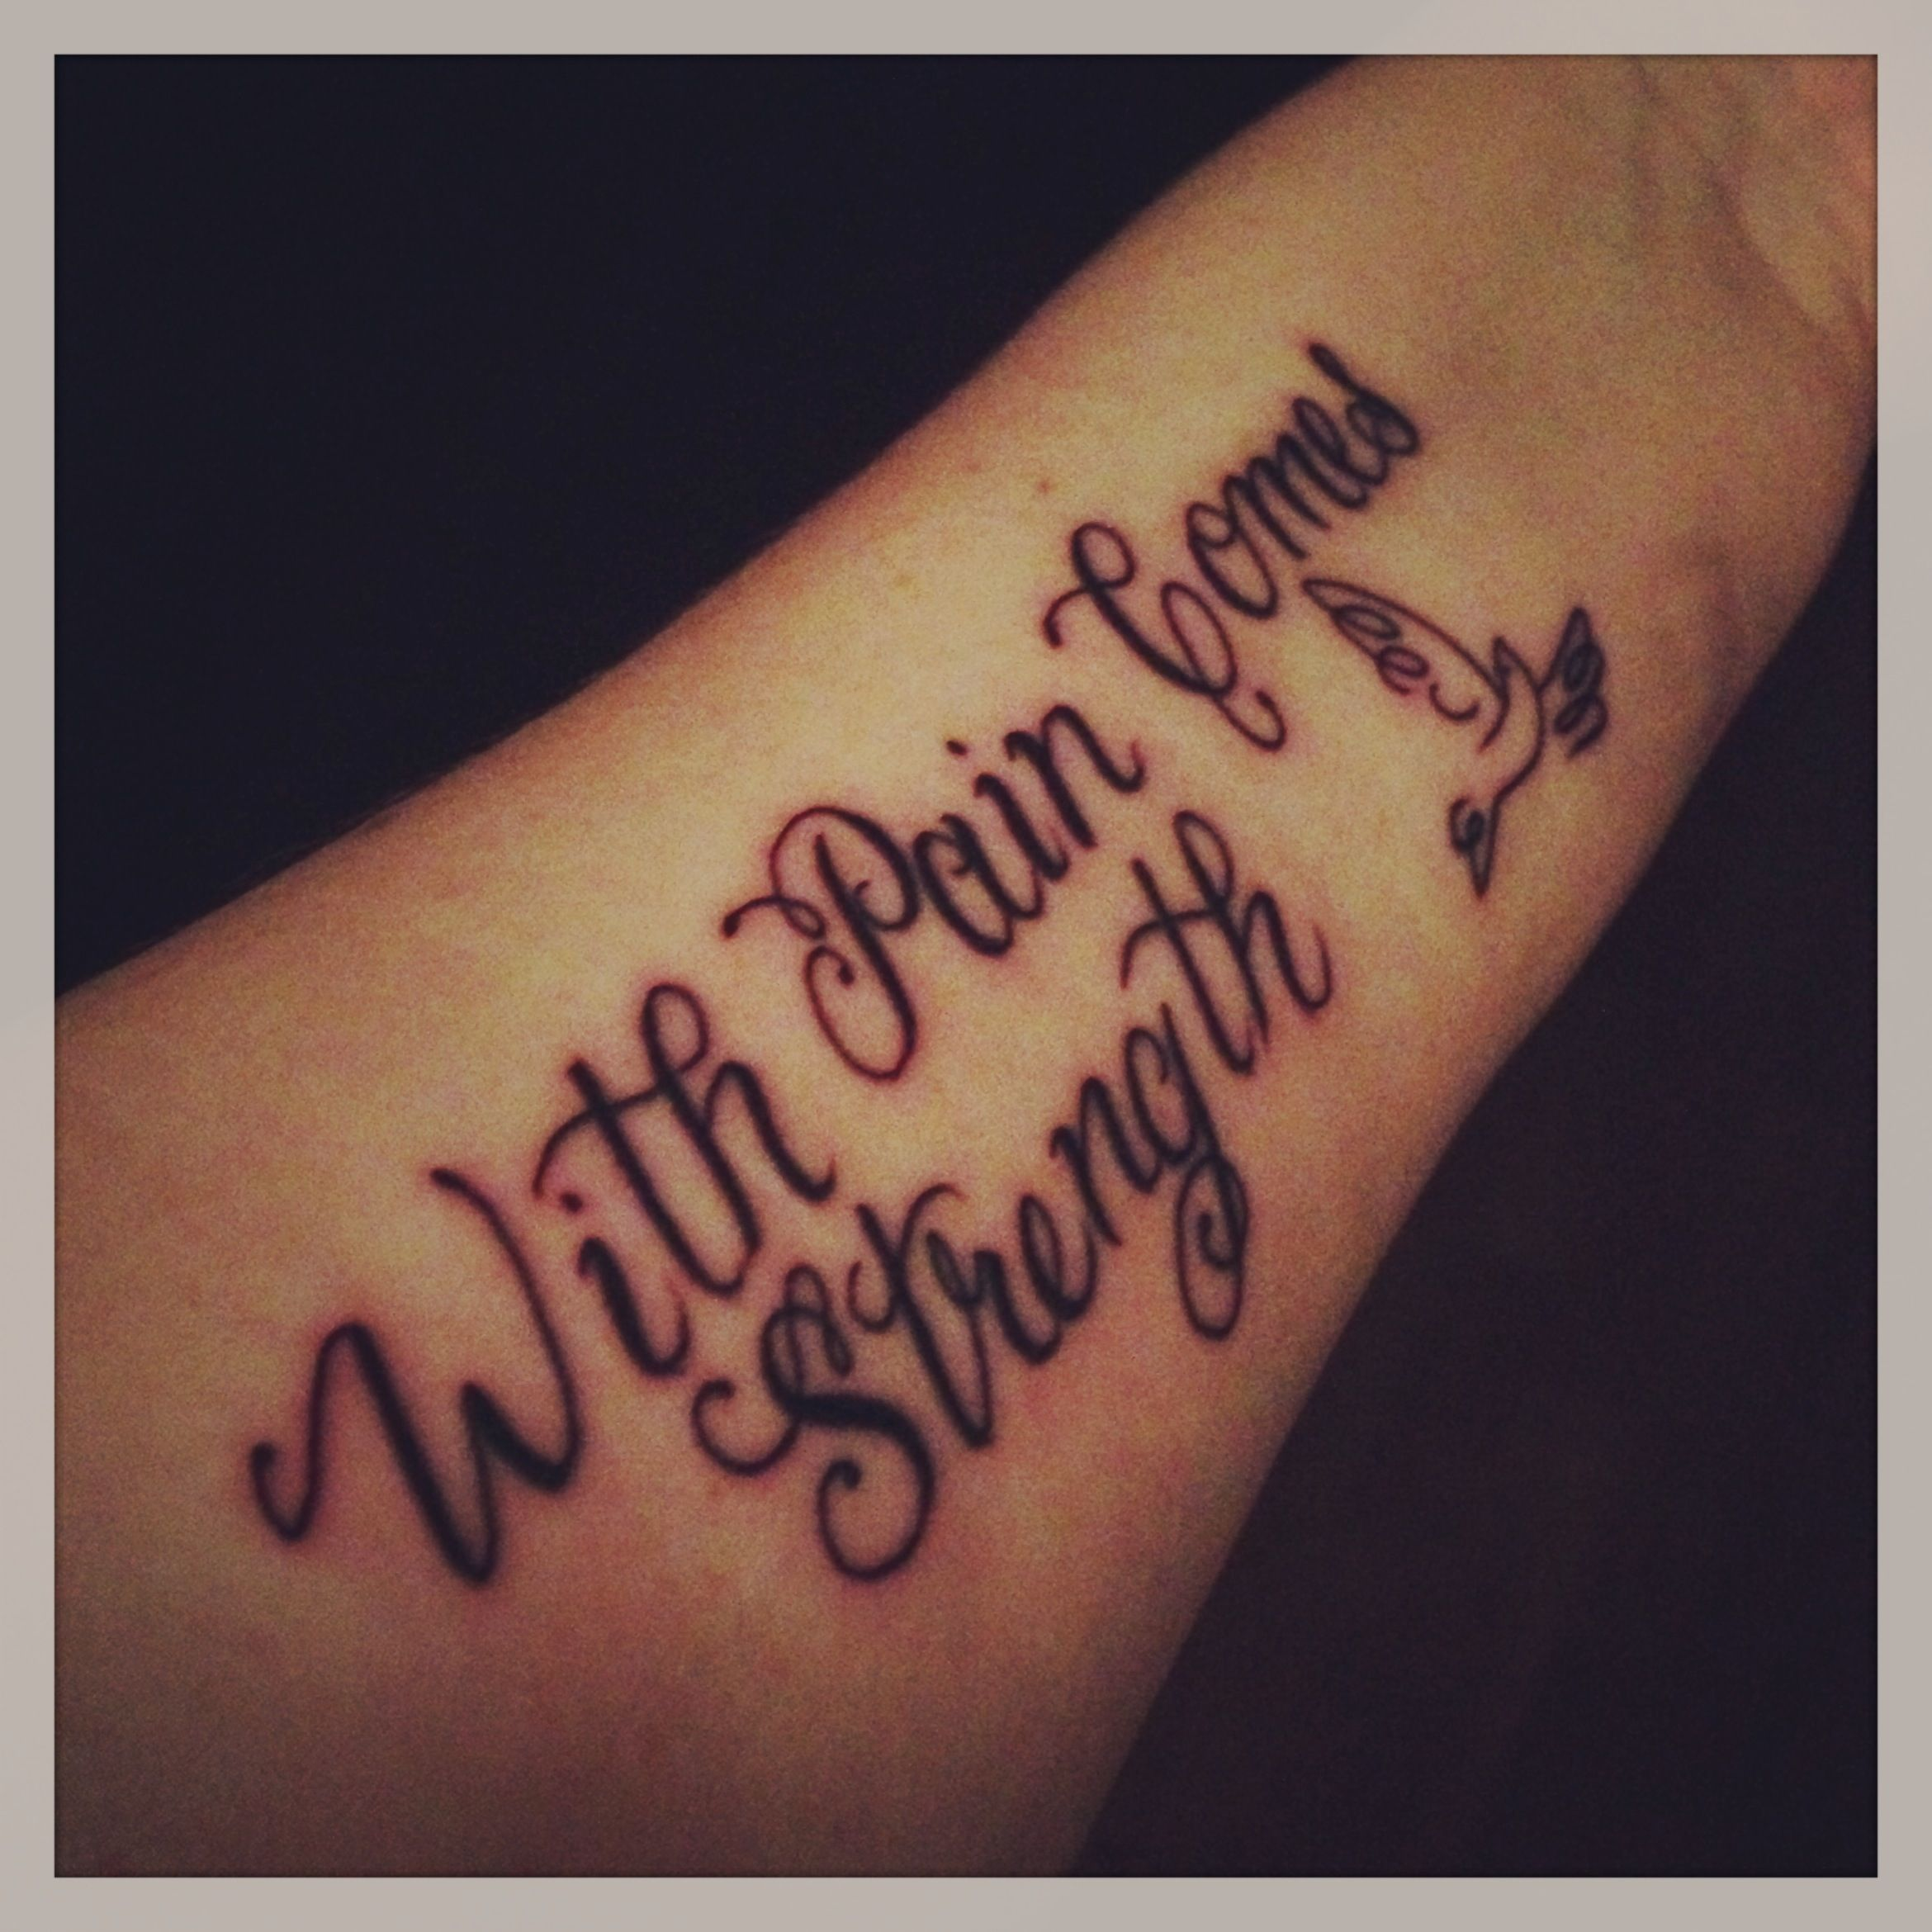 With pain comes strength | Tattoos | Pinterest | Strength ...